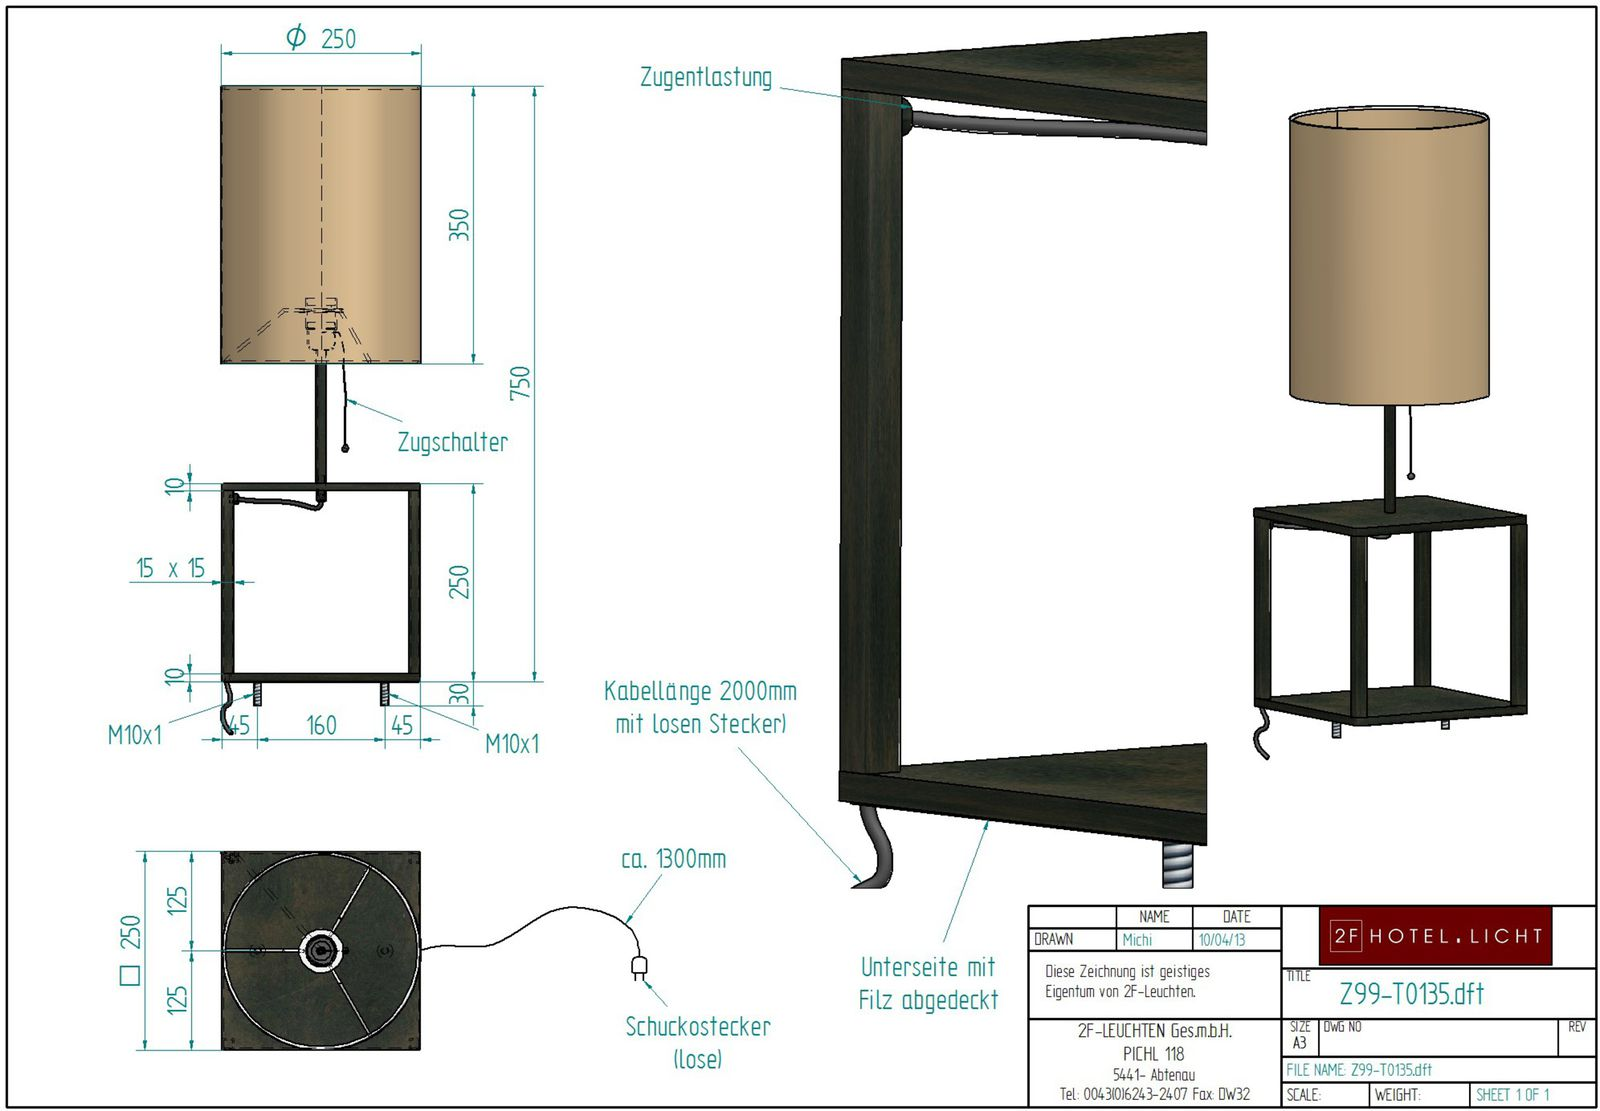 Table lamp, l=250mm, wide=250mm, h=750mm, surface: RO, techn. Data: 1xE27, 60W, cable black